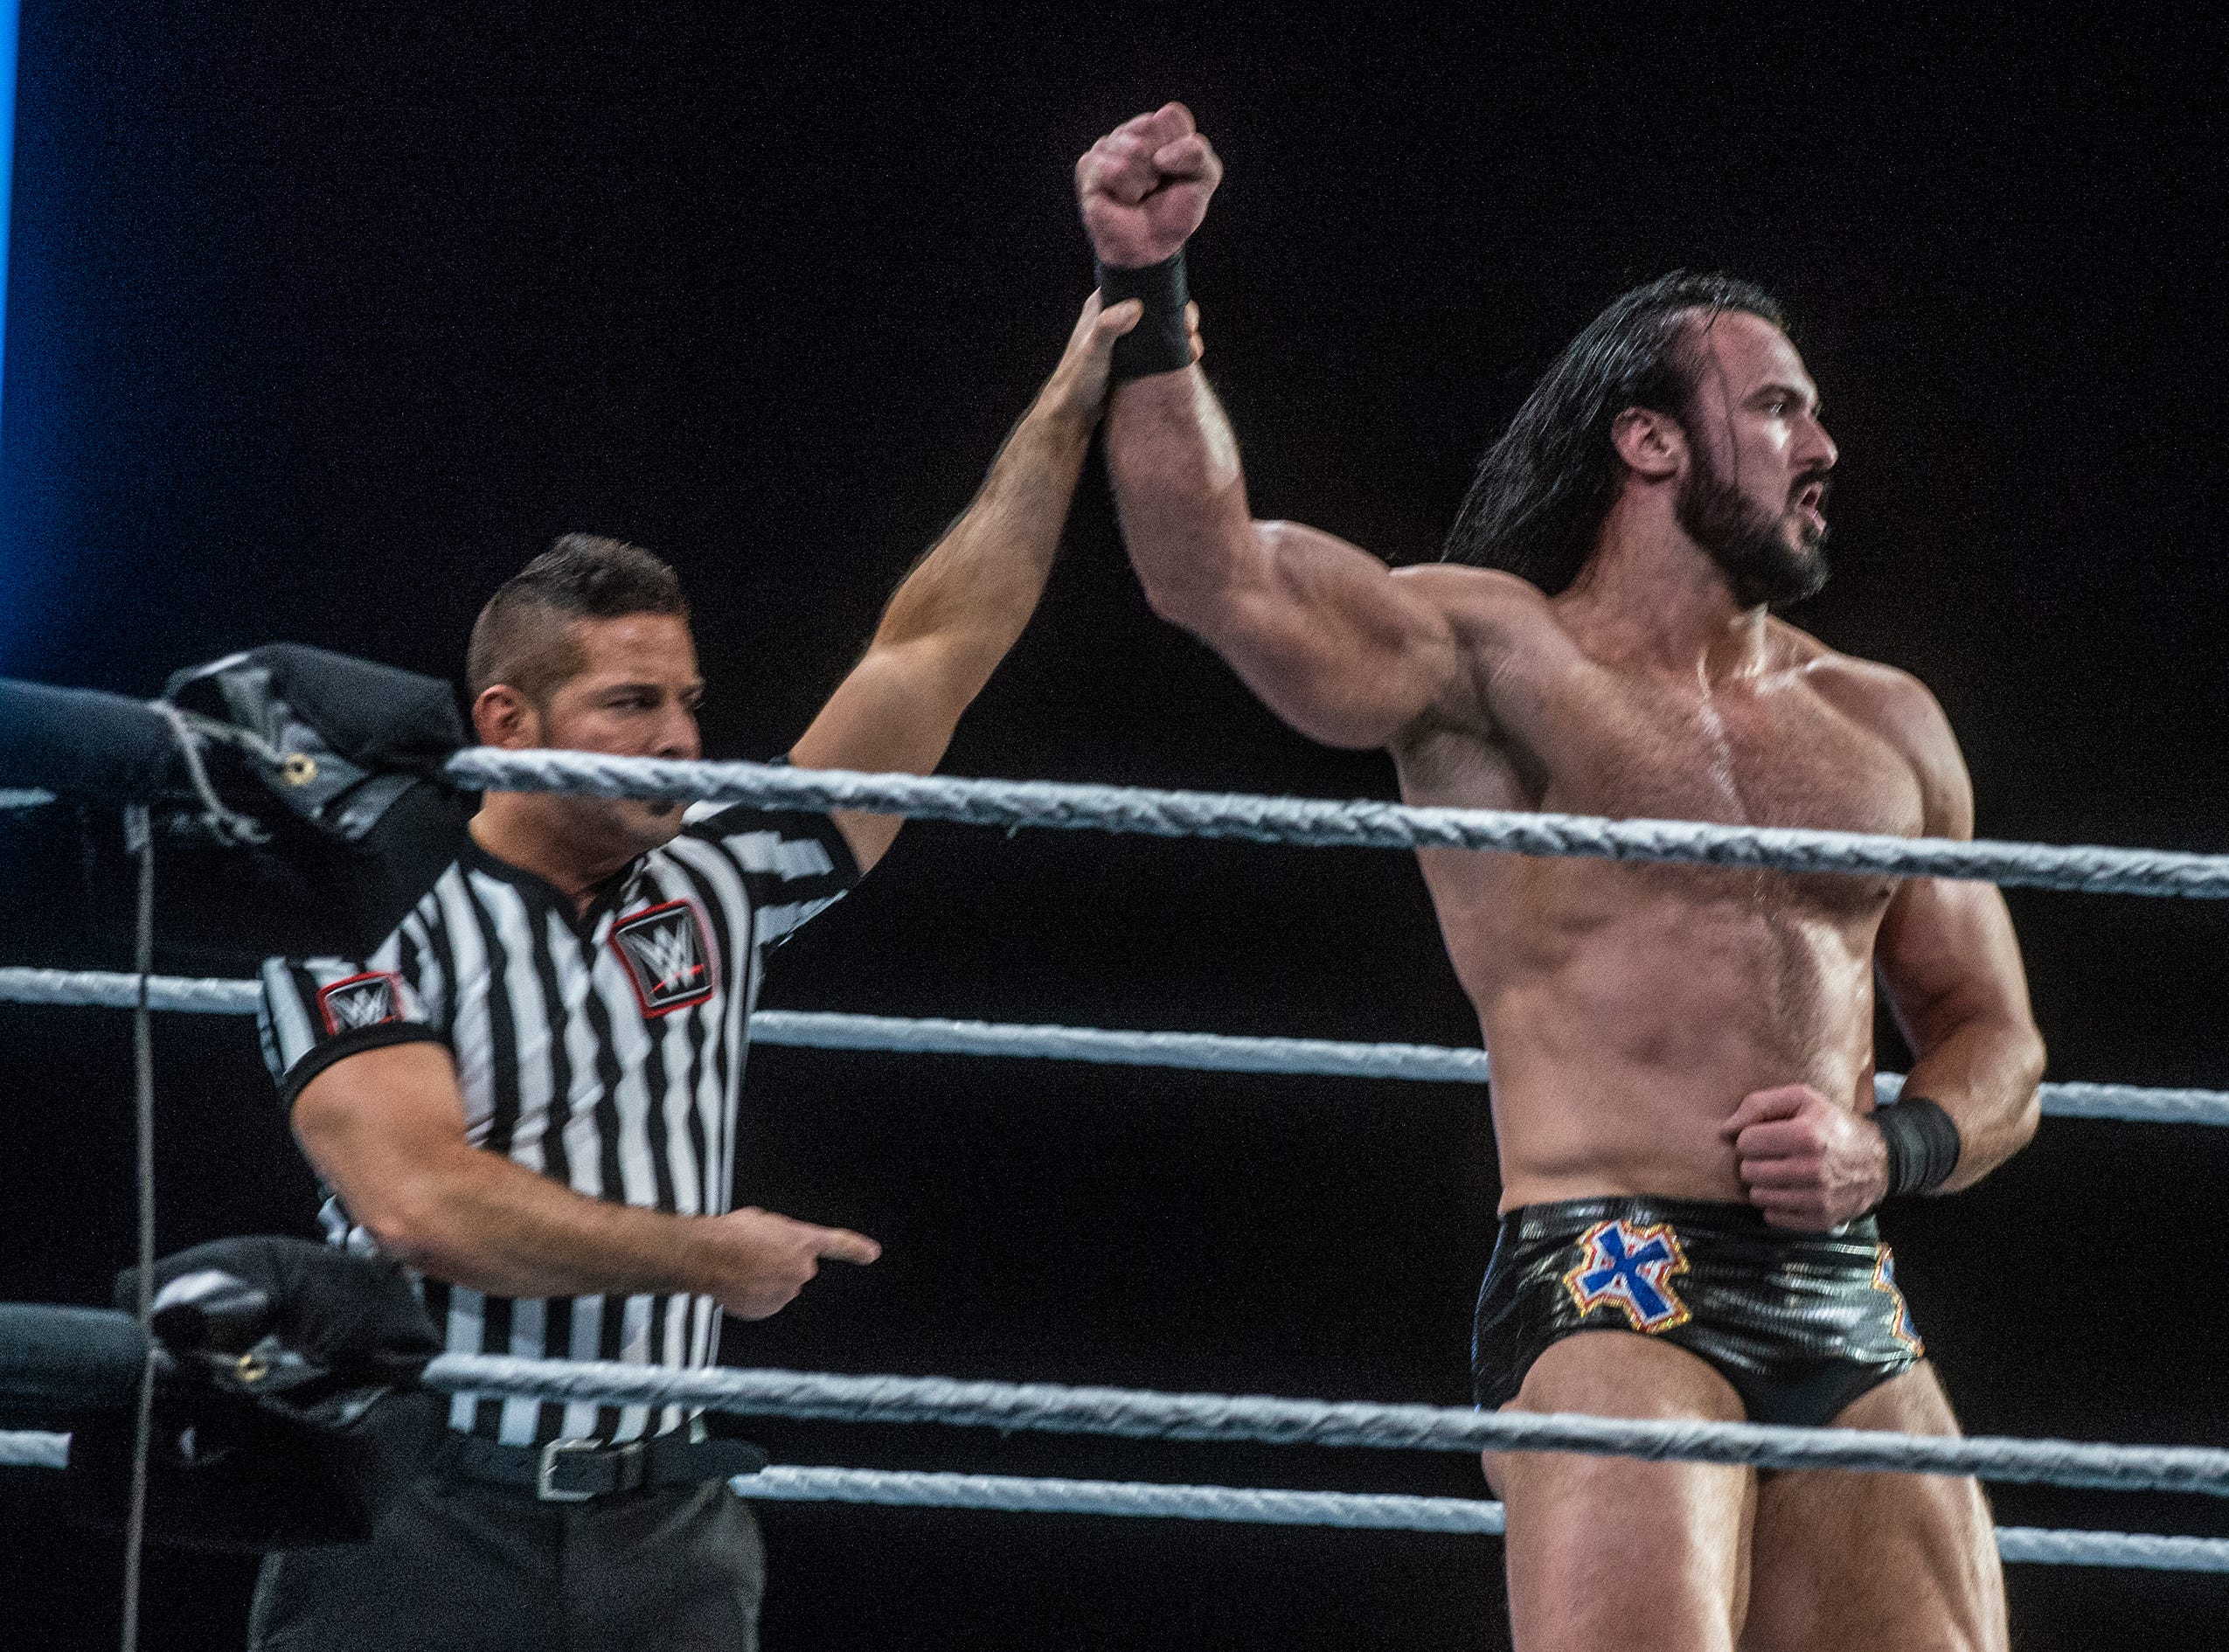 Drew McIntyre takes the win. WWE Live Road to Wrestlemania came to Garrett Coliseum in Montgomery on Sunday, Feb. 24, 2019.